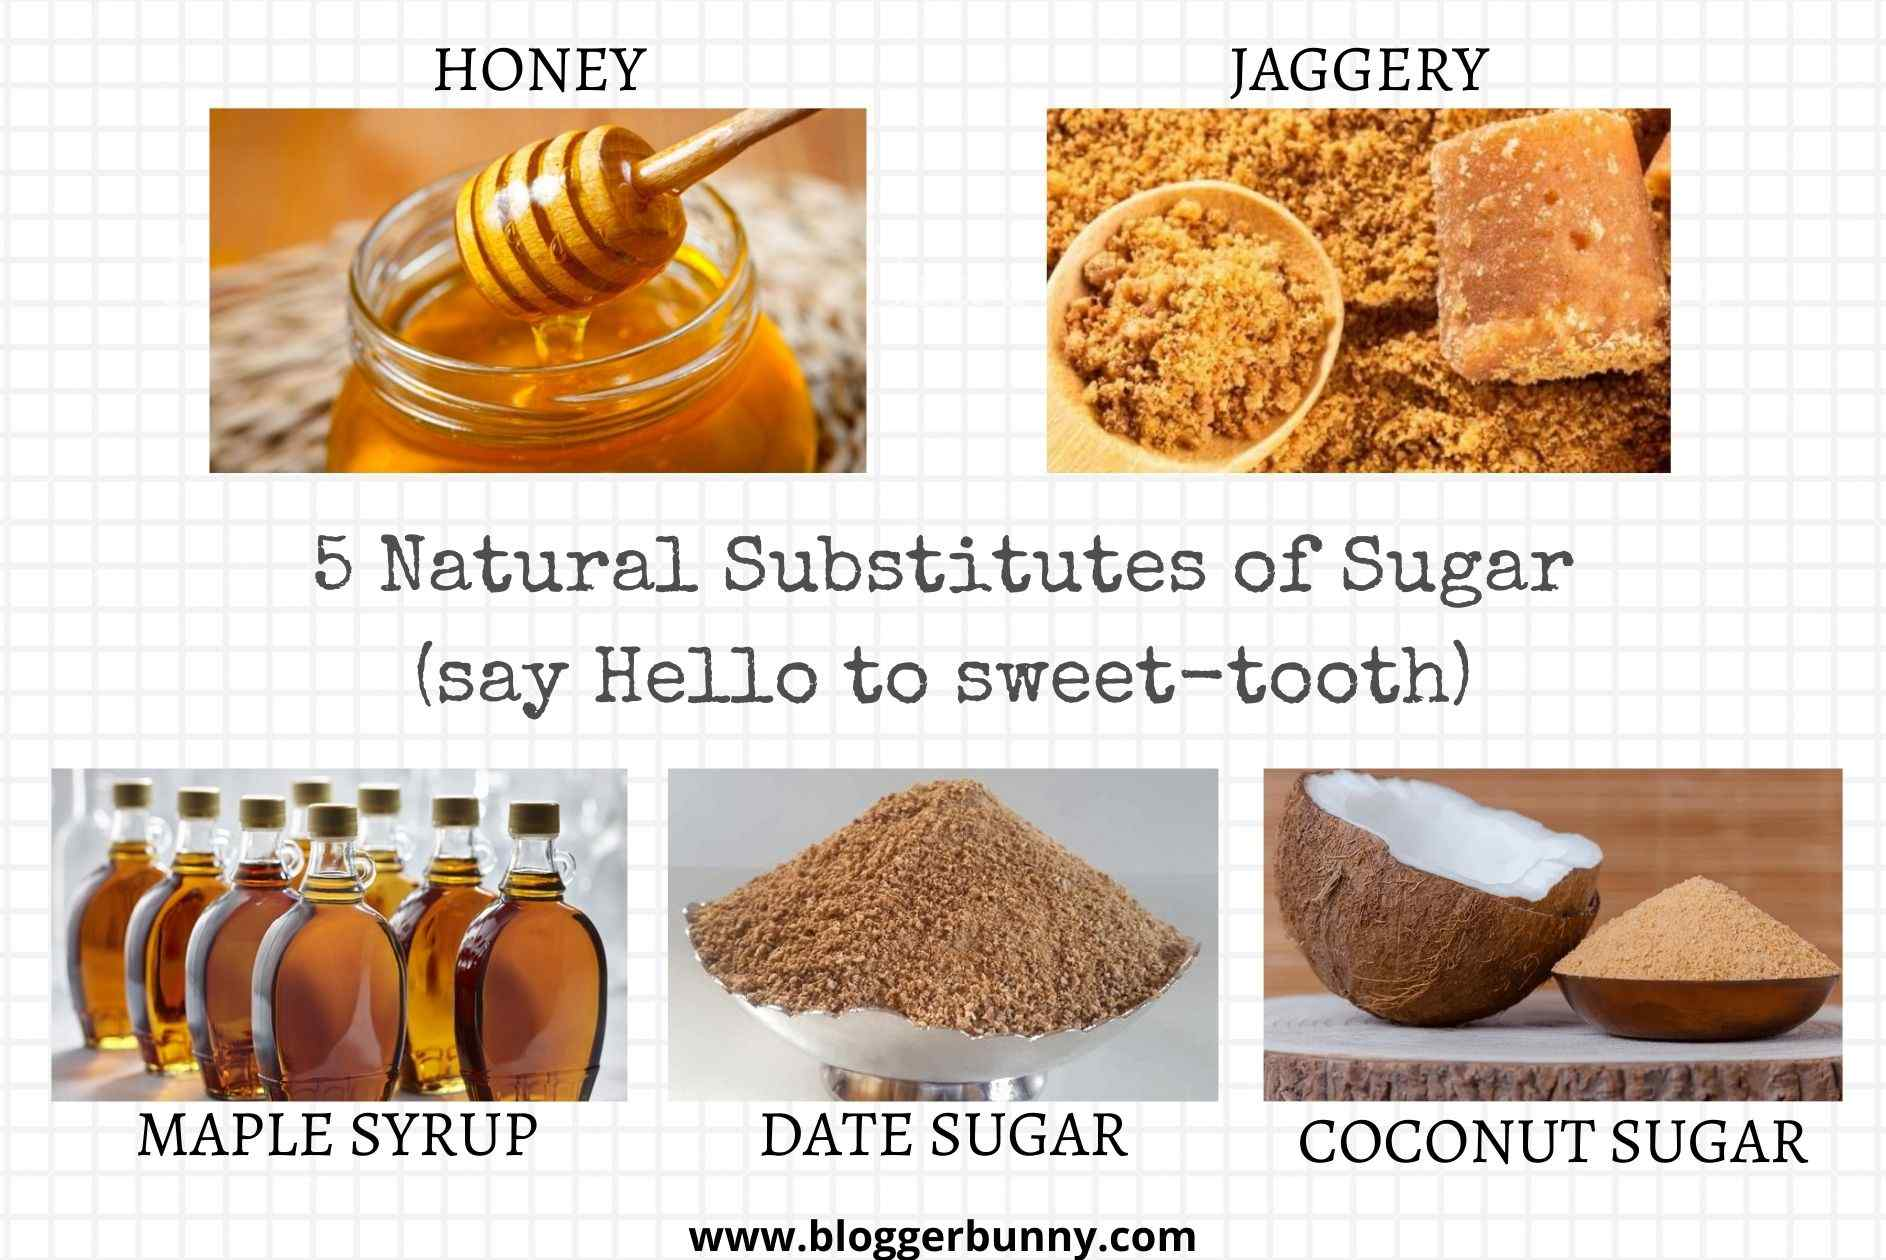 5 Natural Substitutes of Sugar (say Hello to sweet-tooth!)